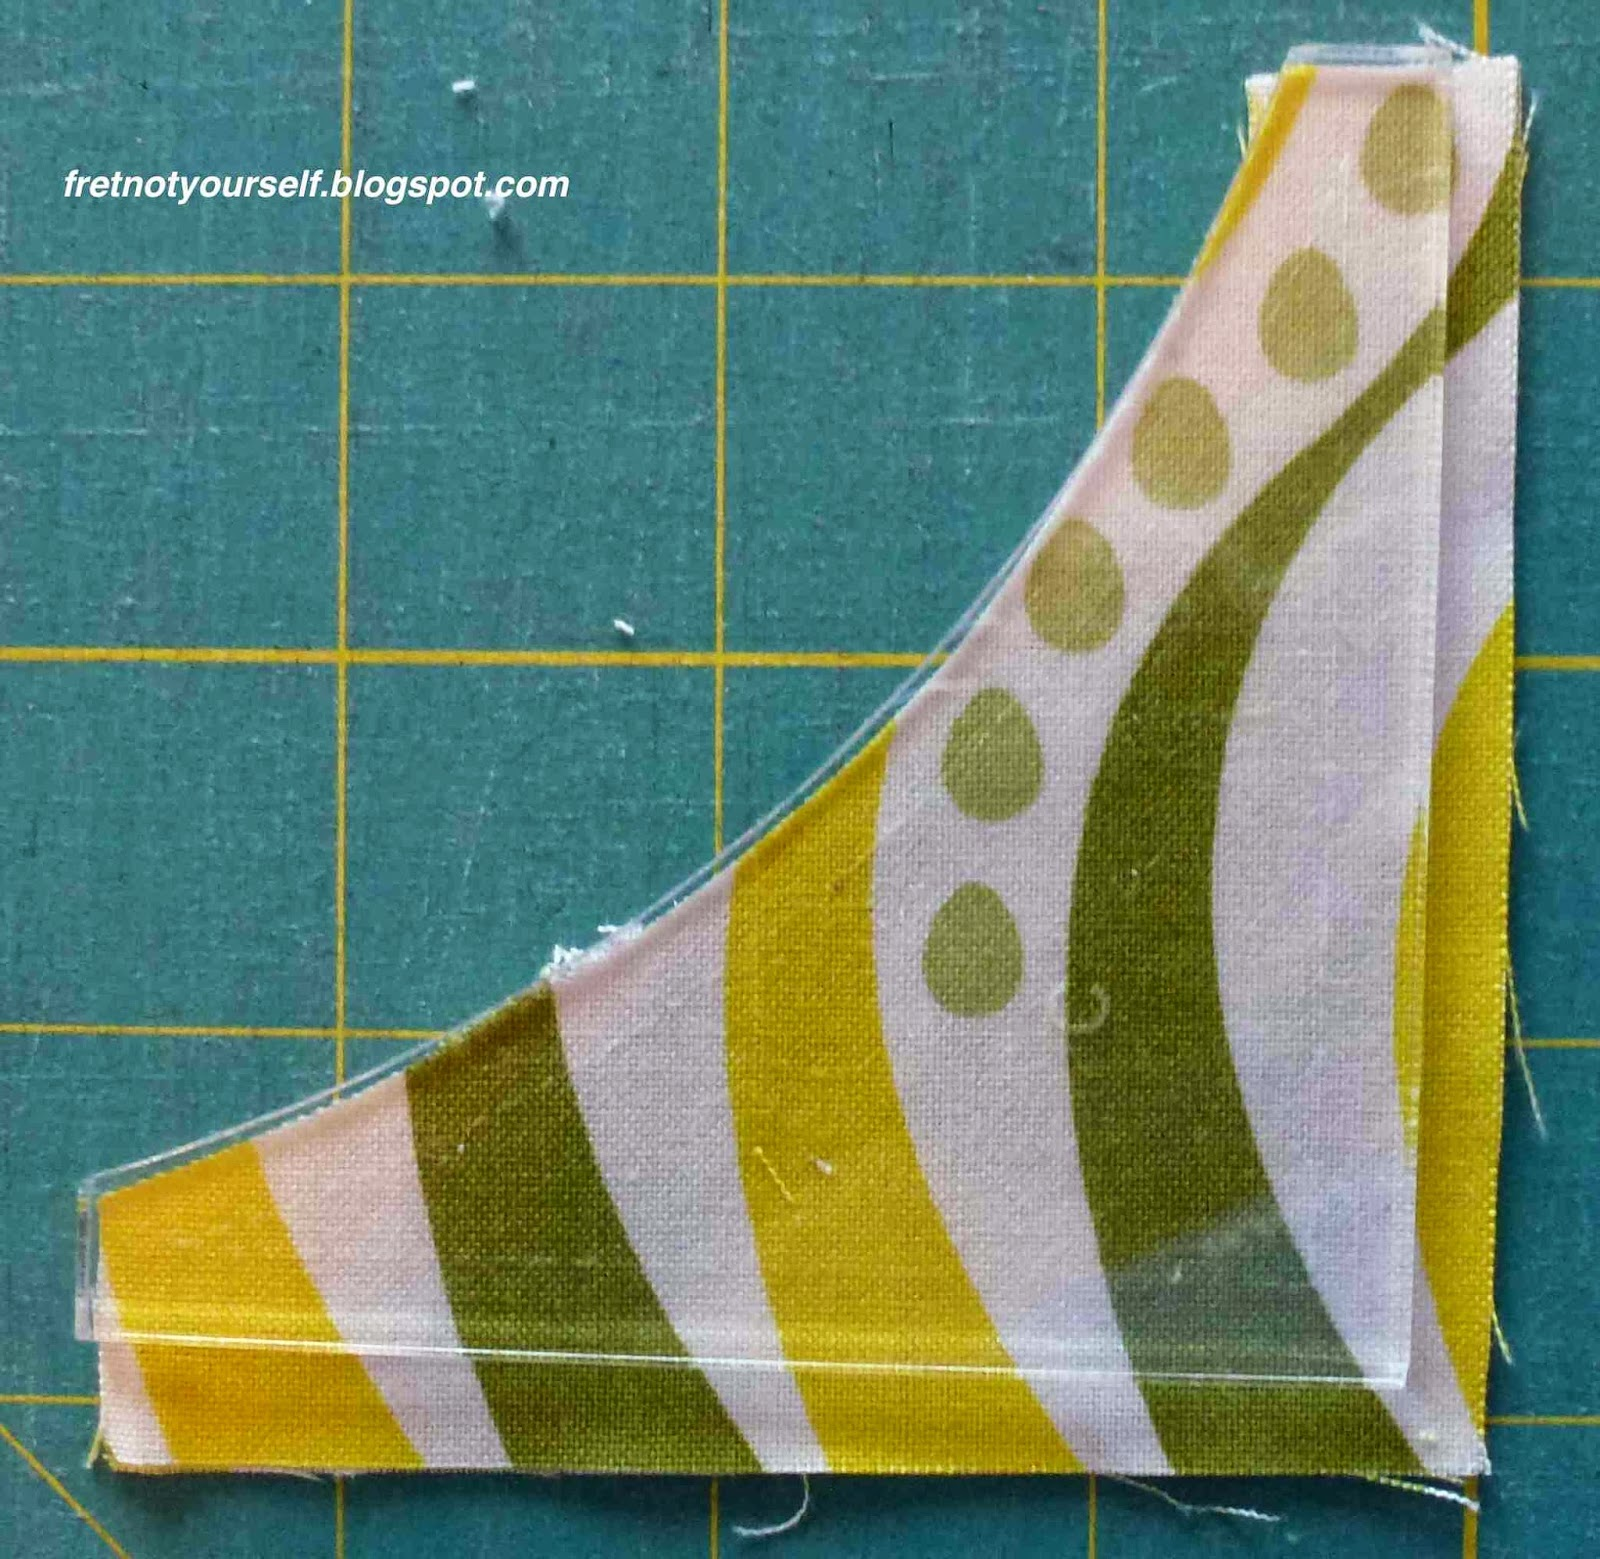 Plastic template is positioned on fabric to show how larger outer seam allowance was cut.